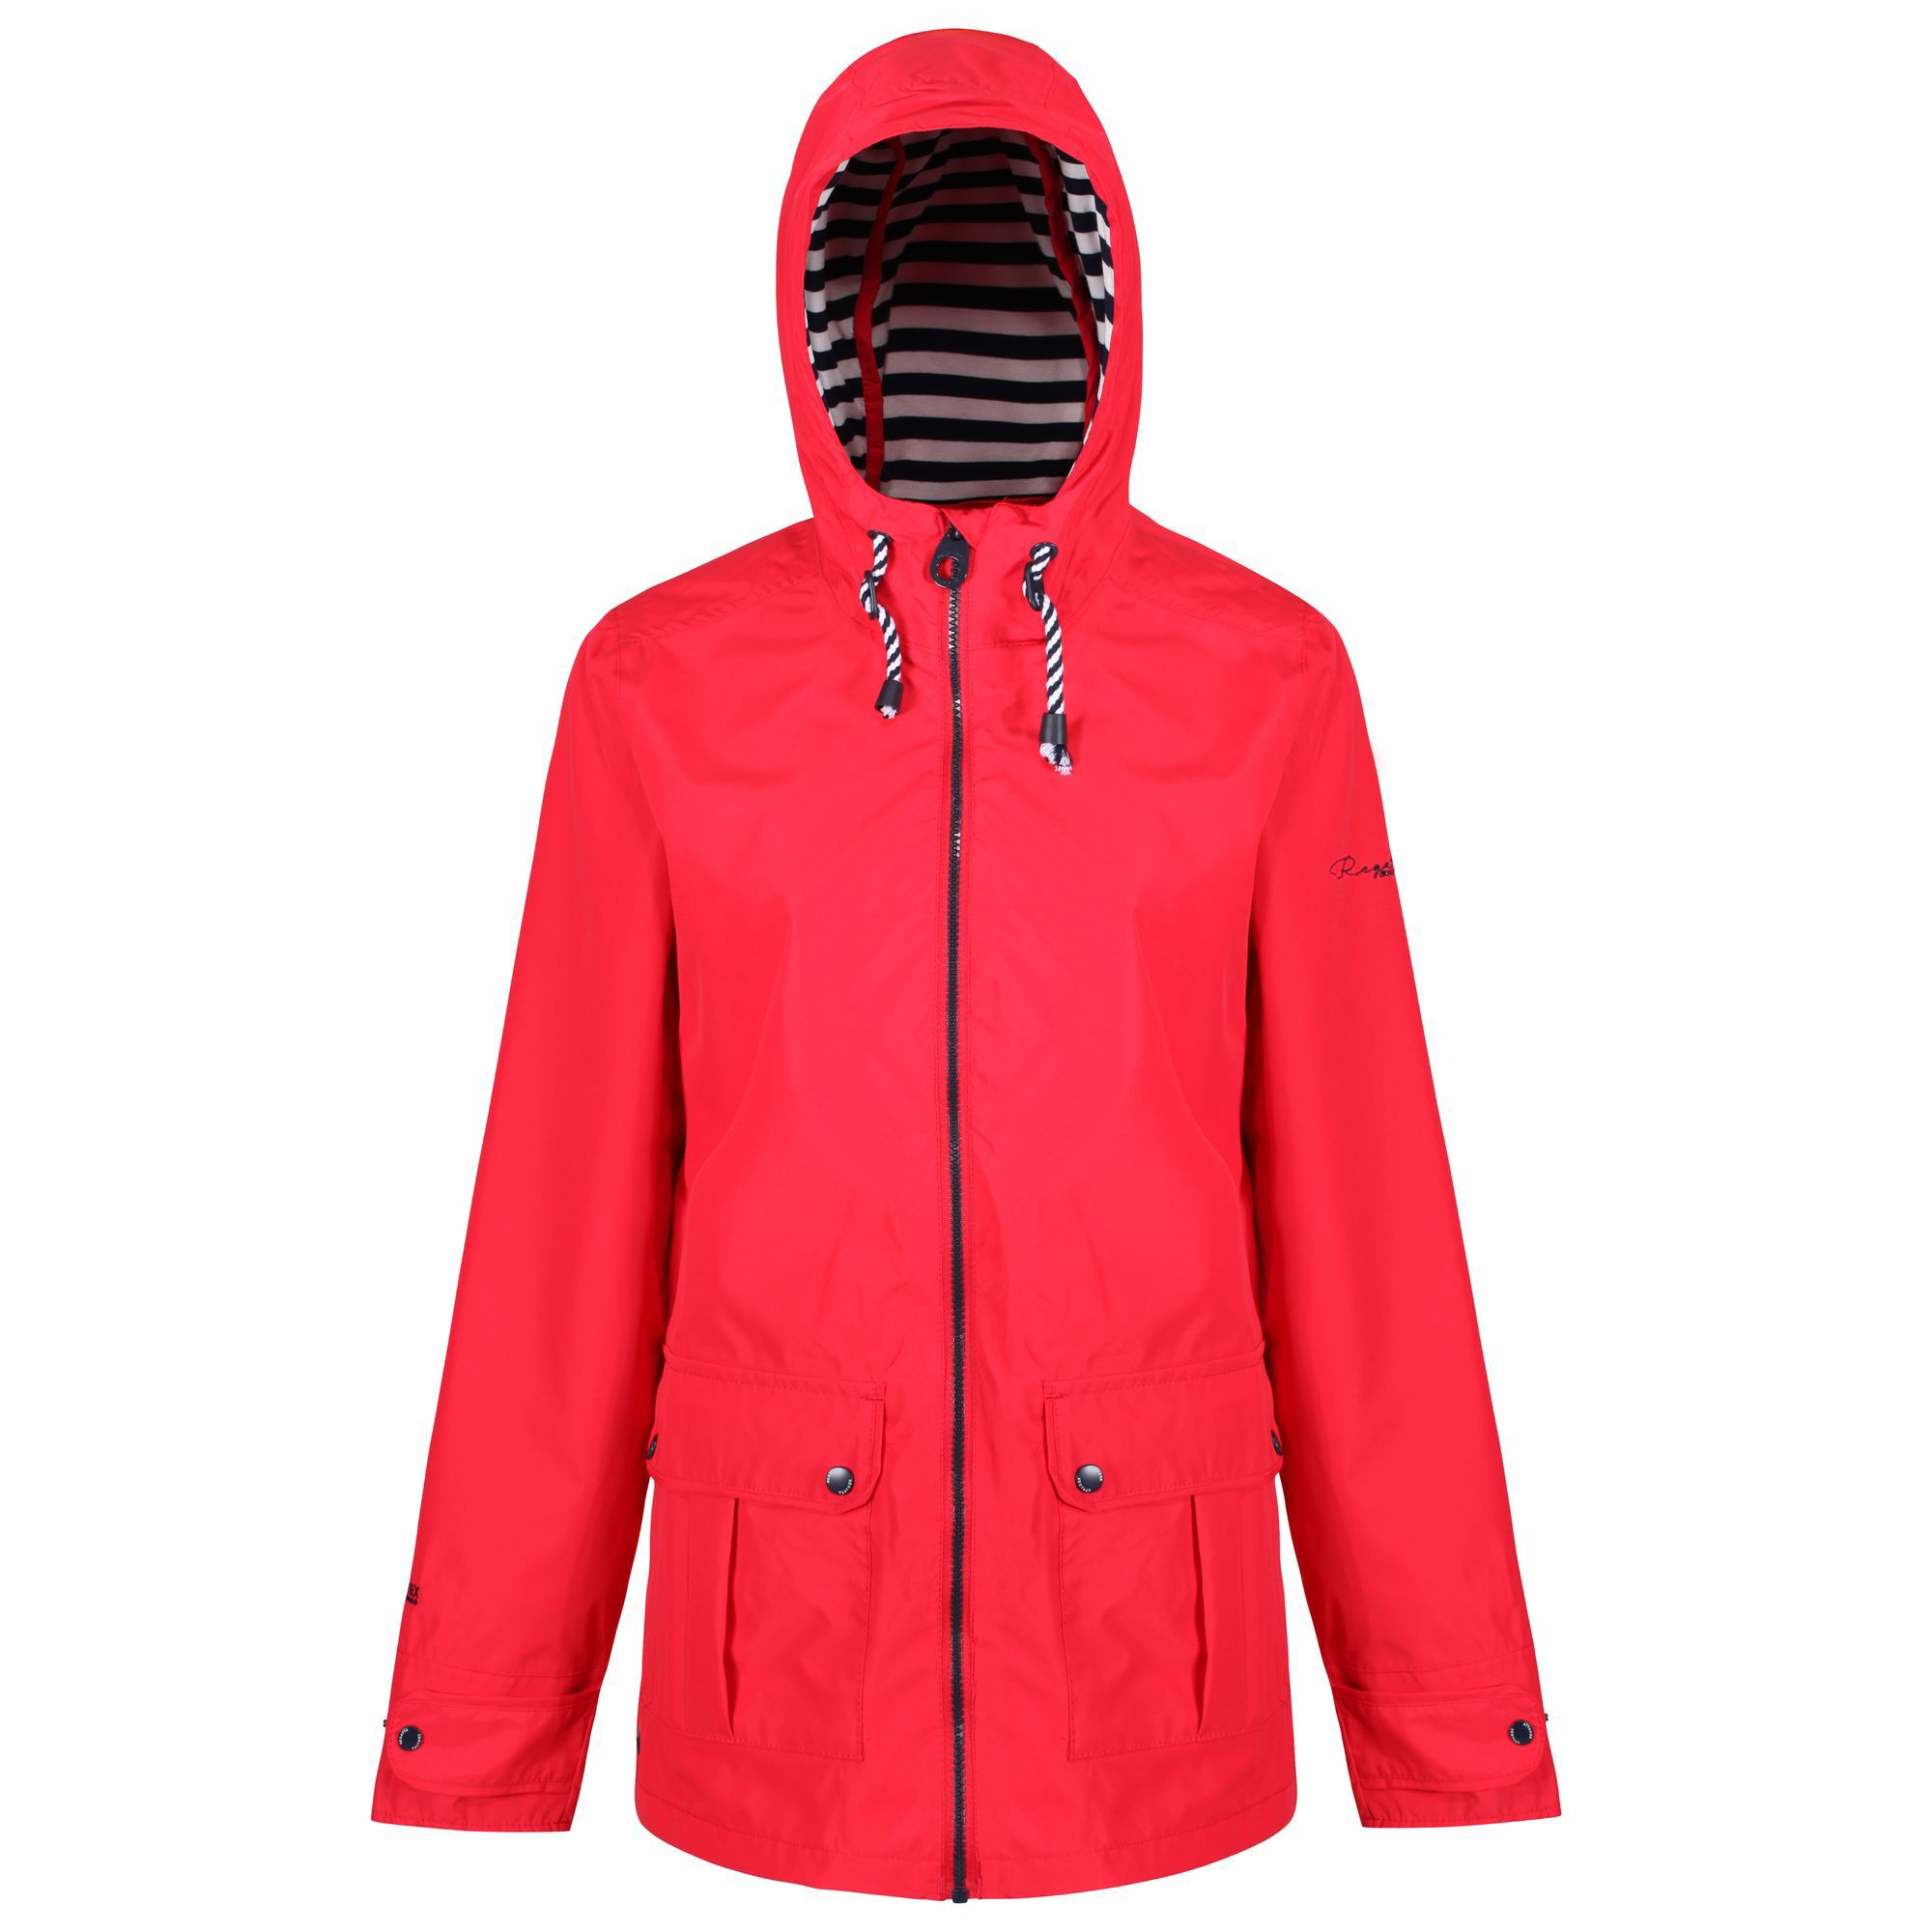 Regatta Bayeur Waterproof Jacket, Red